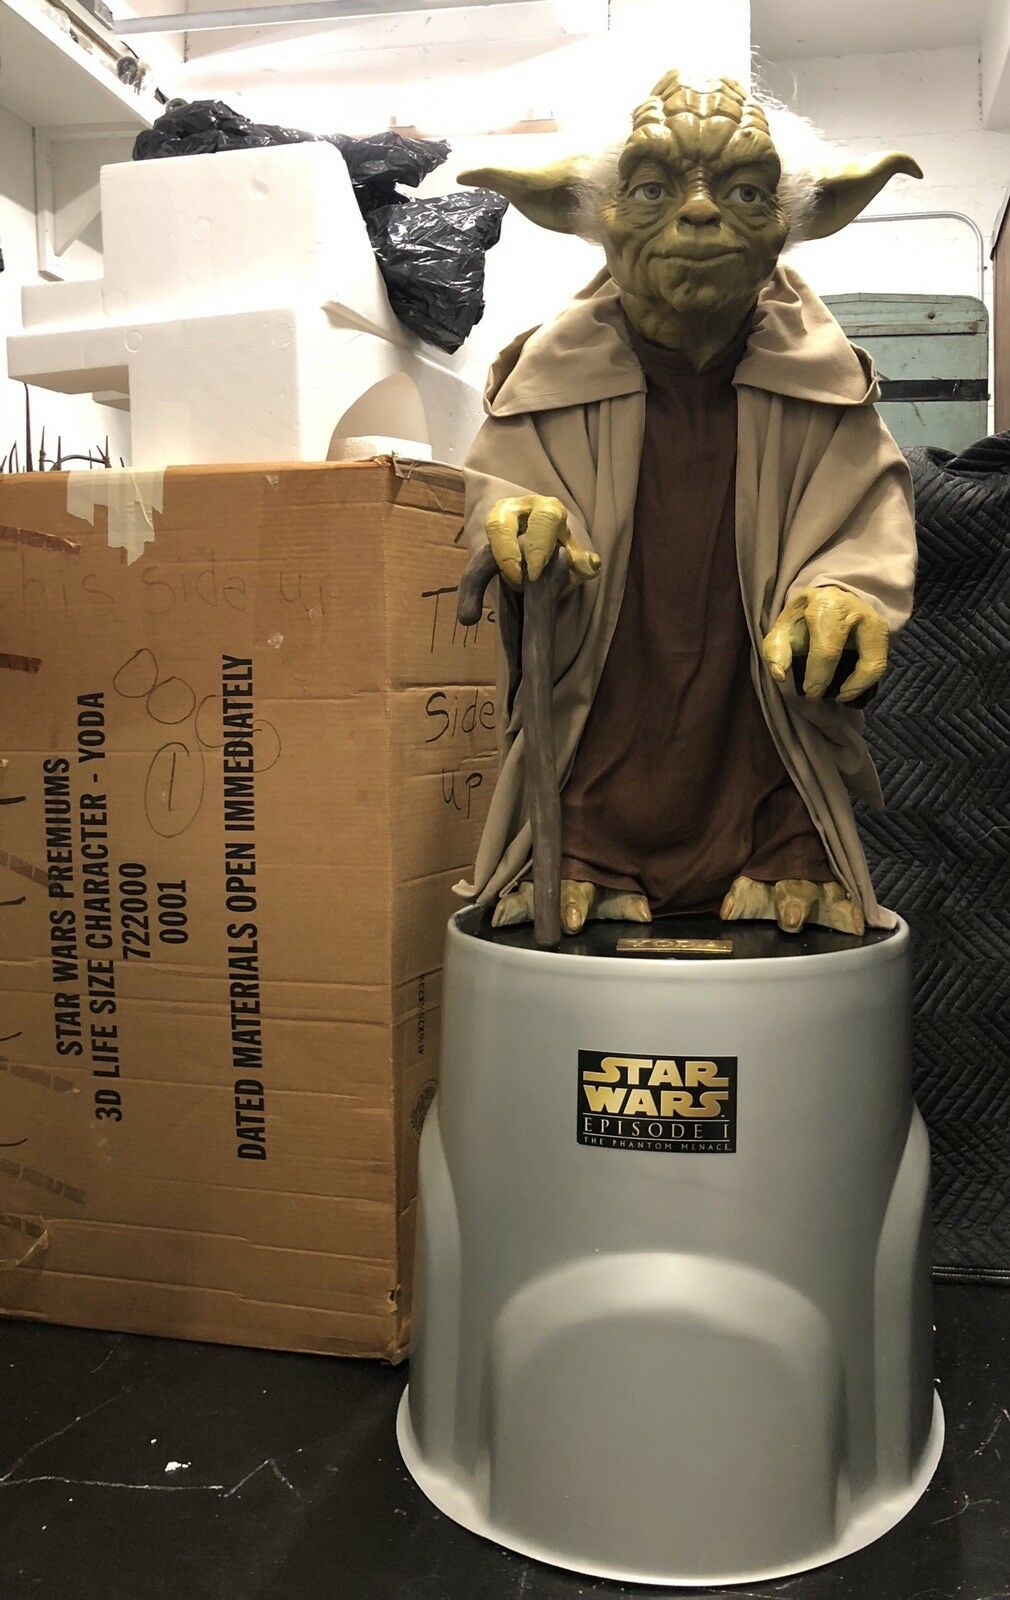 RARE Pepsi STAR WARS Promo YODA STATUE Movie 3D Prop STORE DISPLAY Figure Stand